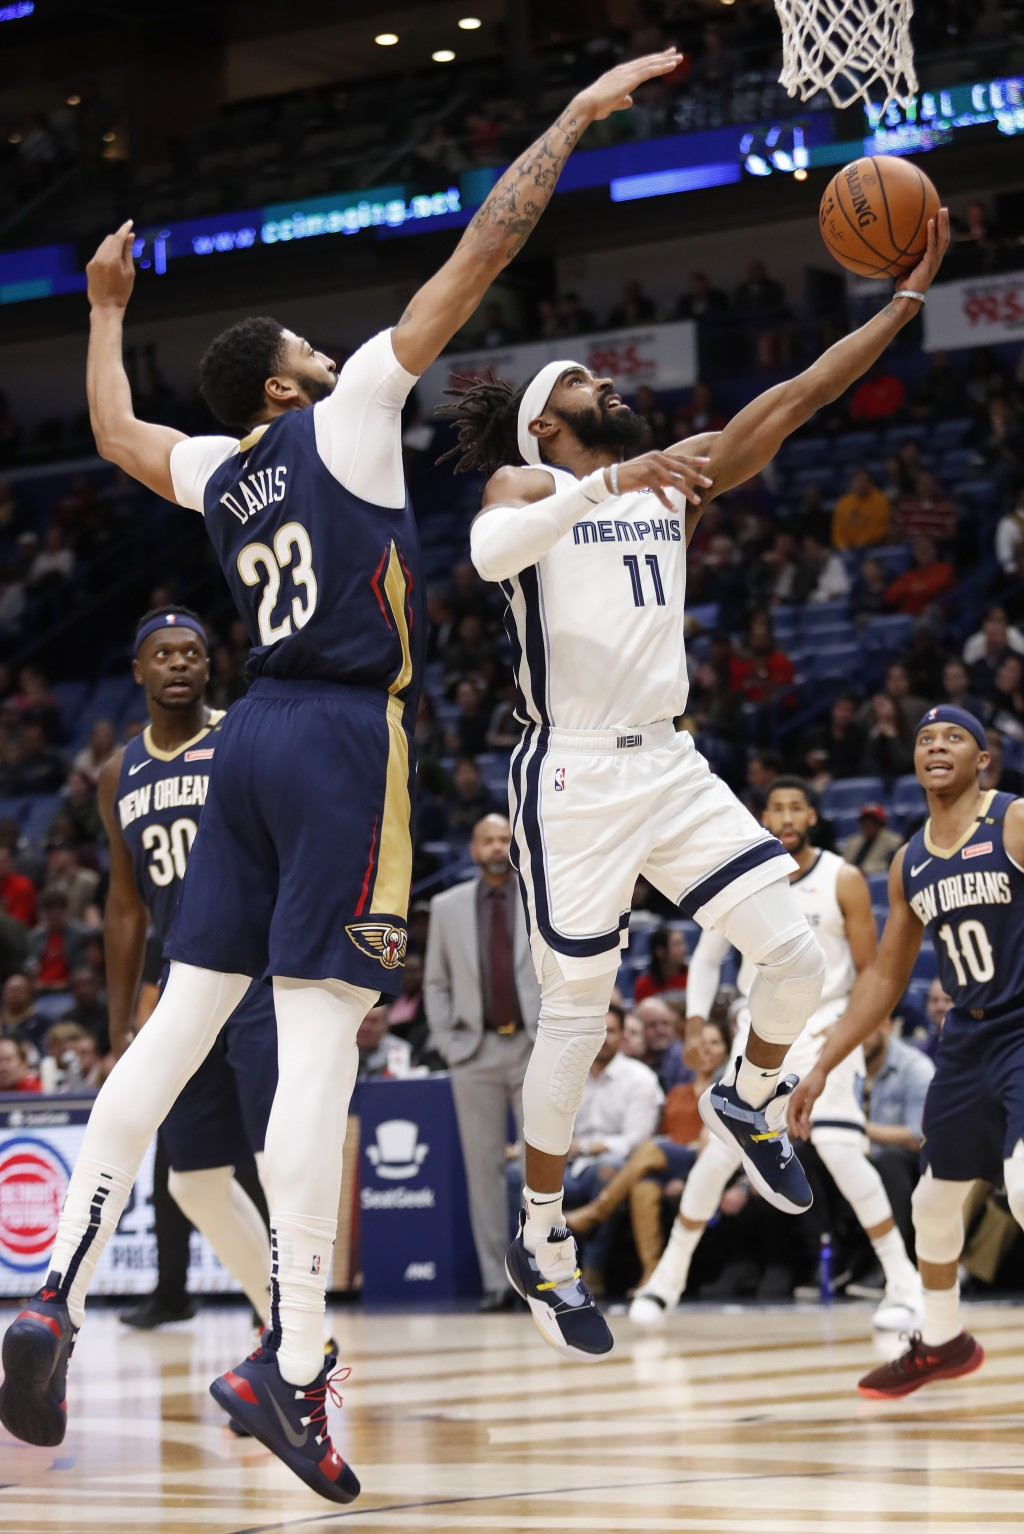 Memphis Grizzlies guard Mike Conley (11) goes up to shoot in front of New Orleans Pelicans forward Anthony Davis (23) in the first half of an NBA bask